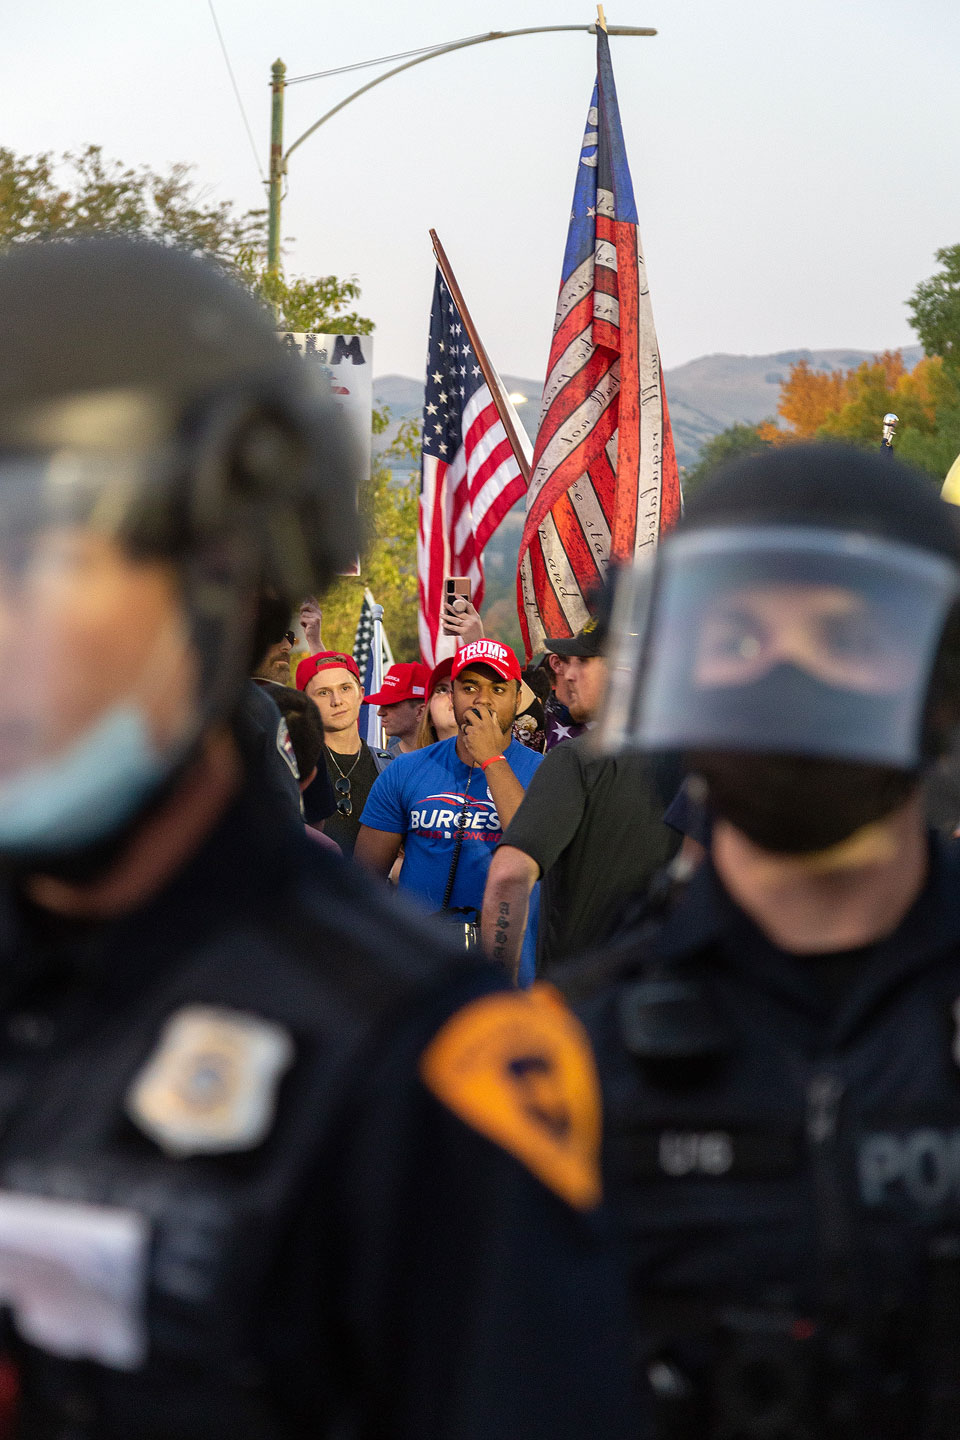 Protesters demonstrate behind police line